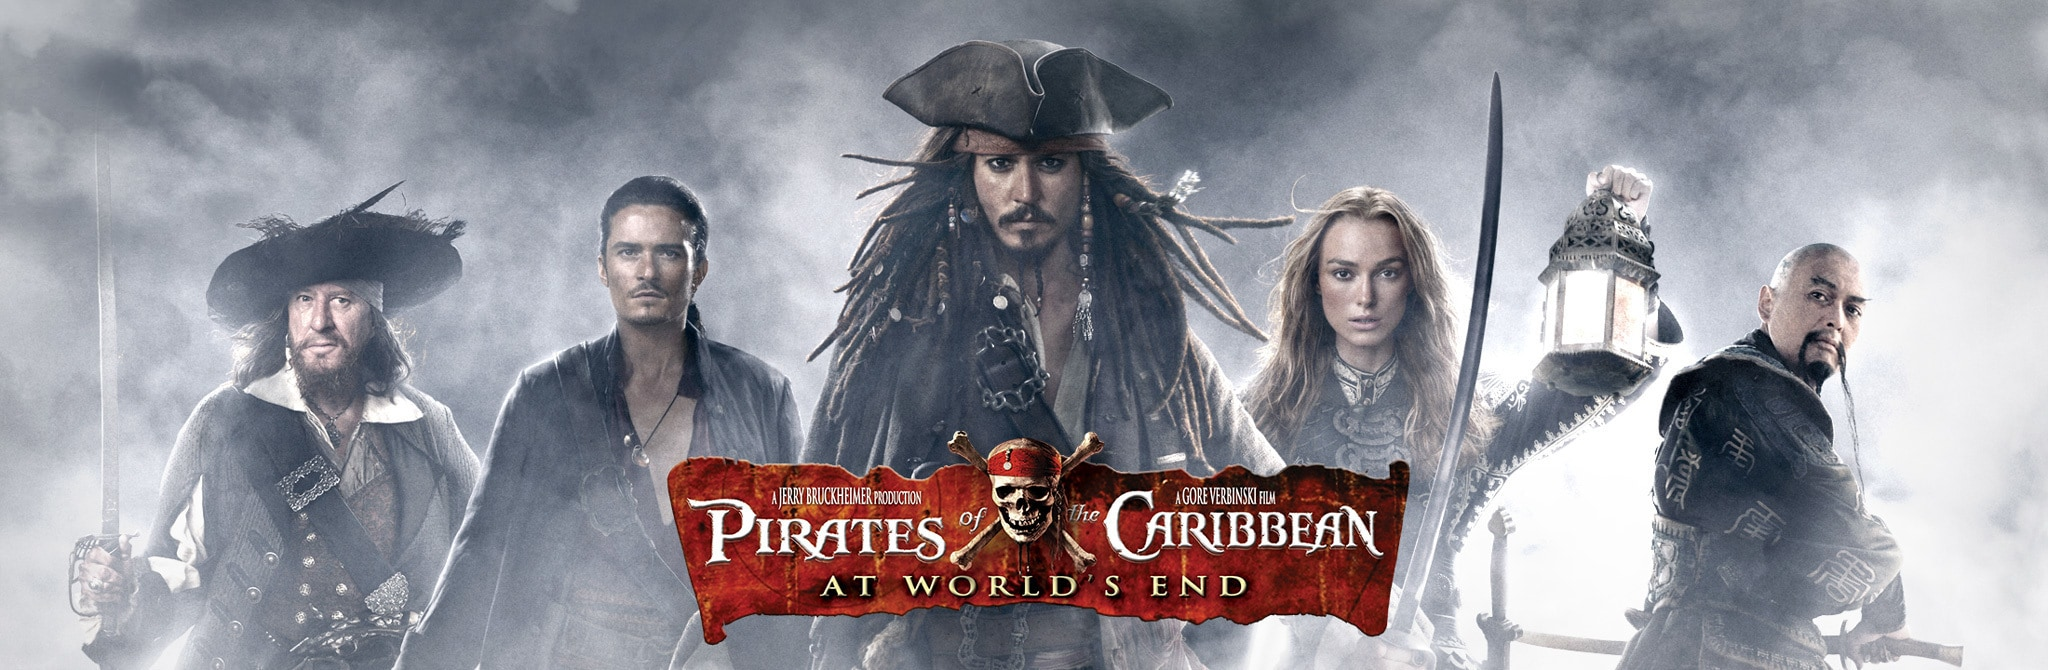 pirates of the caribbean 3 full movie in english